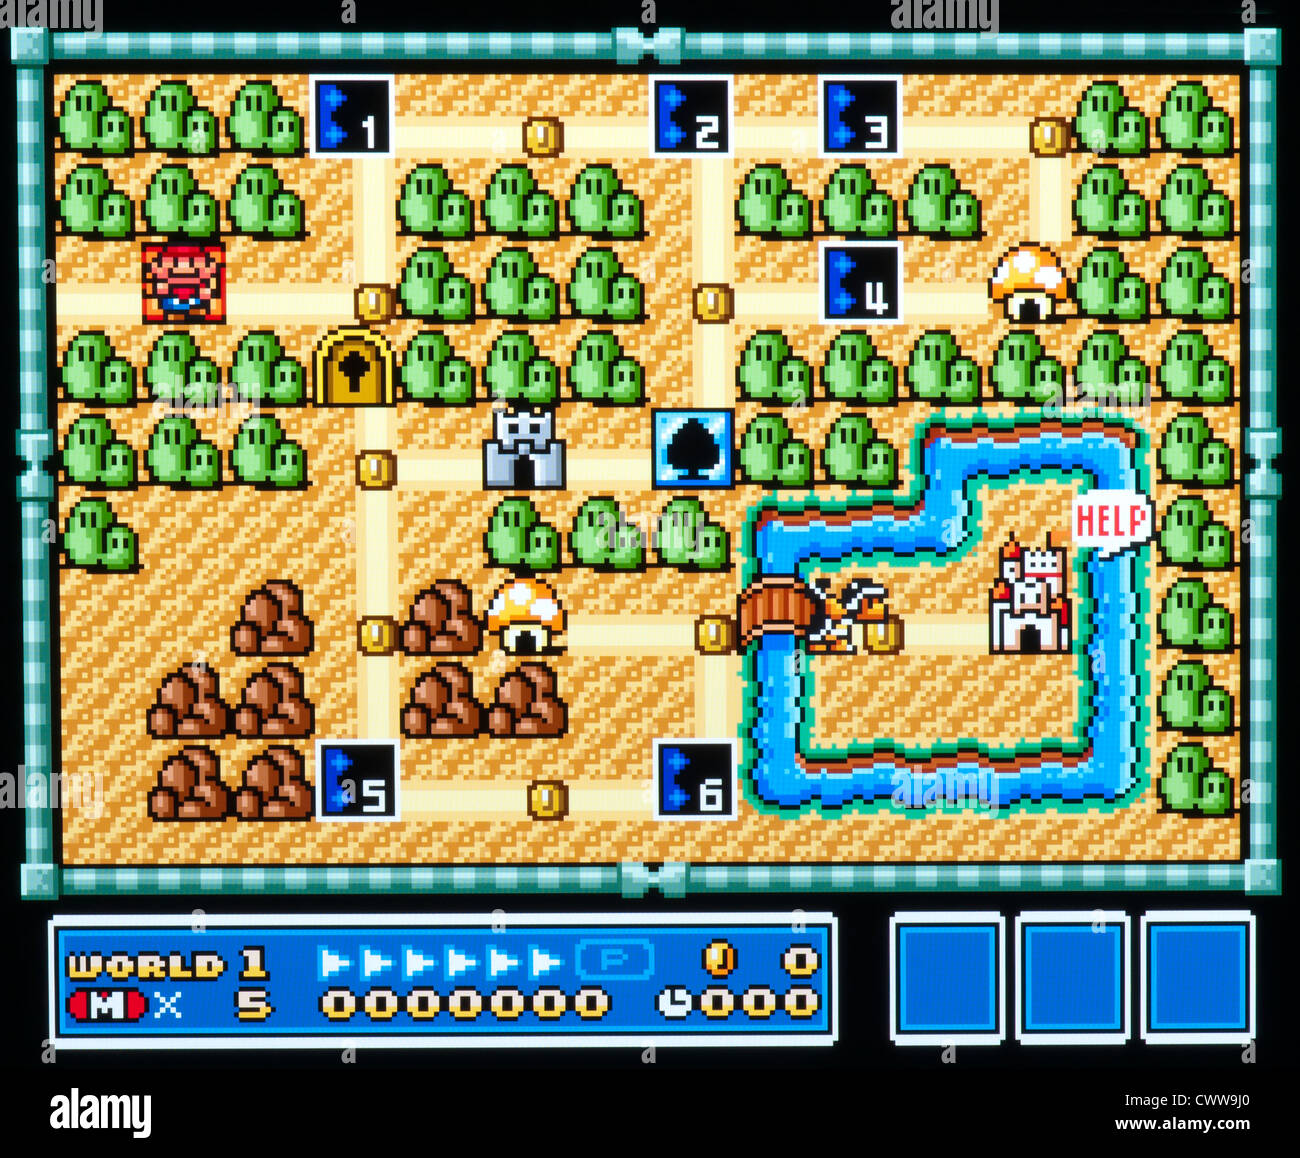 Super mario bros video game world 1 level map interface stock super mario bros video game world 1 level map interface gumiabroncs Images